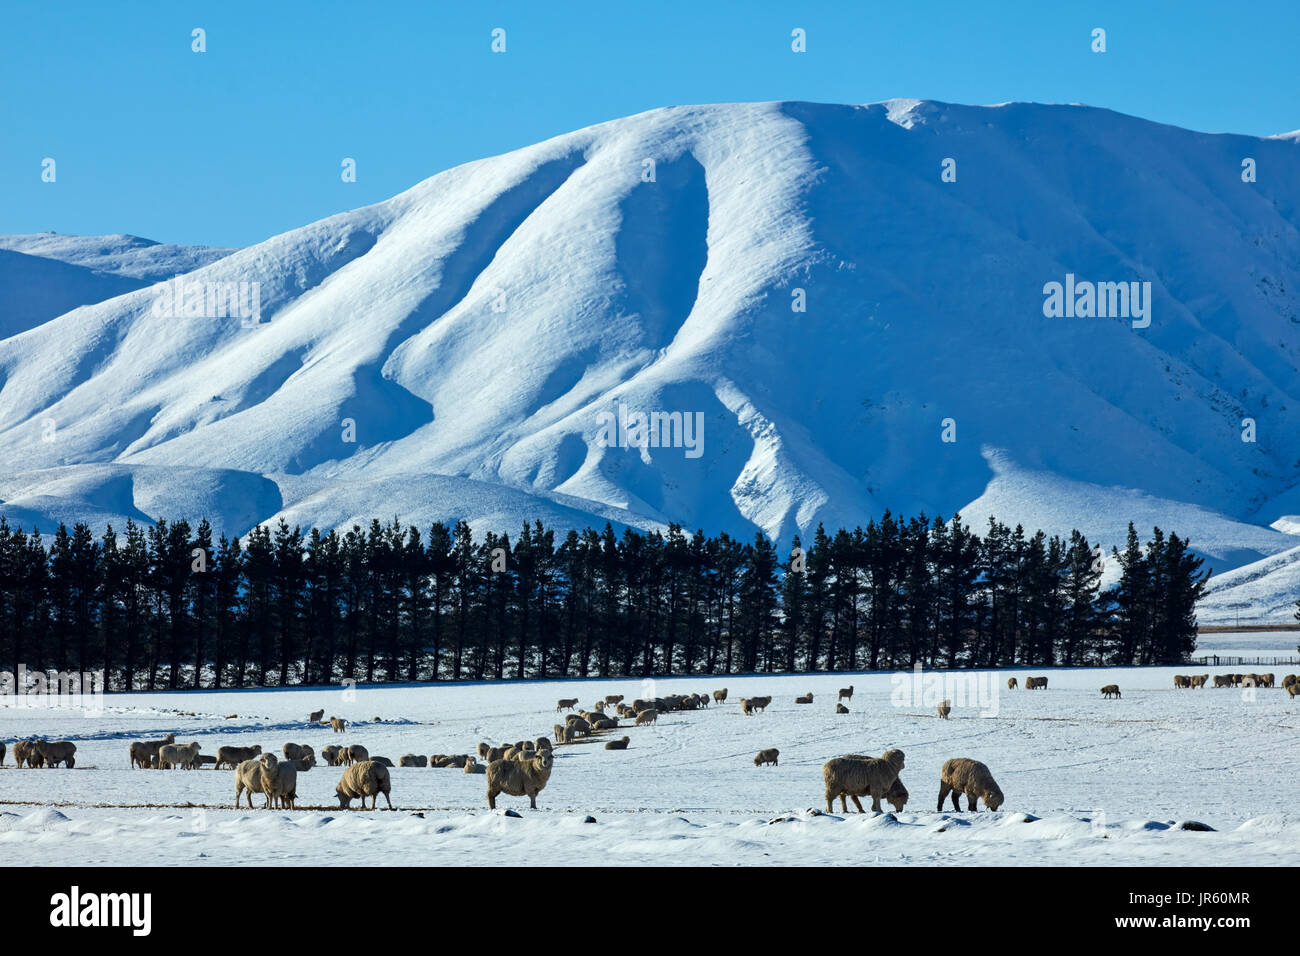 Sheep, Hawkdun Range and snowy farmland, near Oturehua, Maniototo, Central Otago, South Island, New Zealand - Stock Image